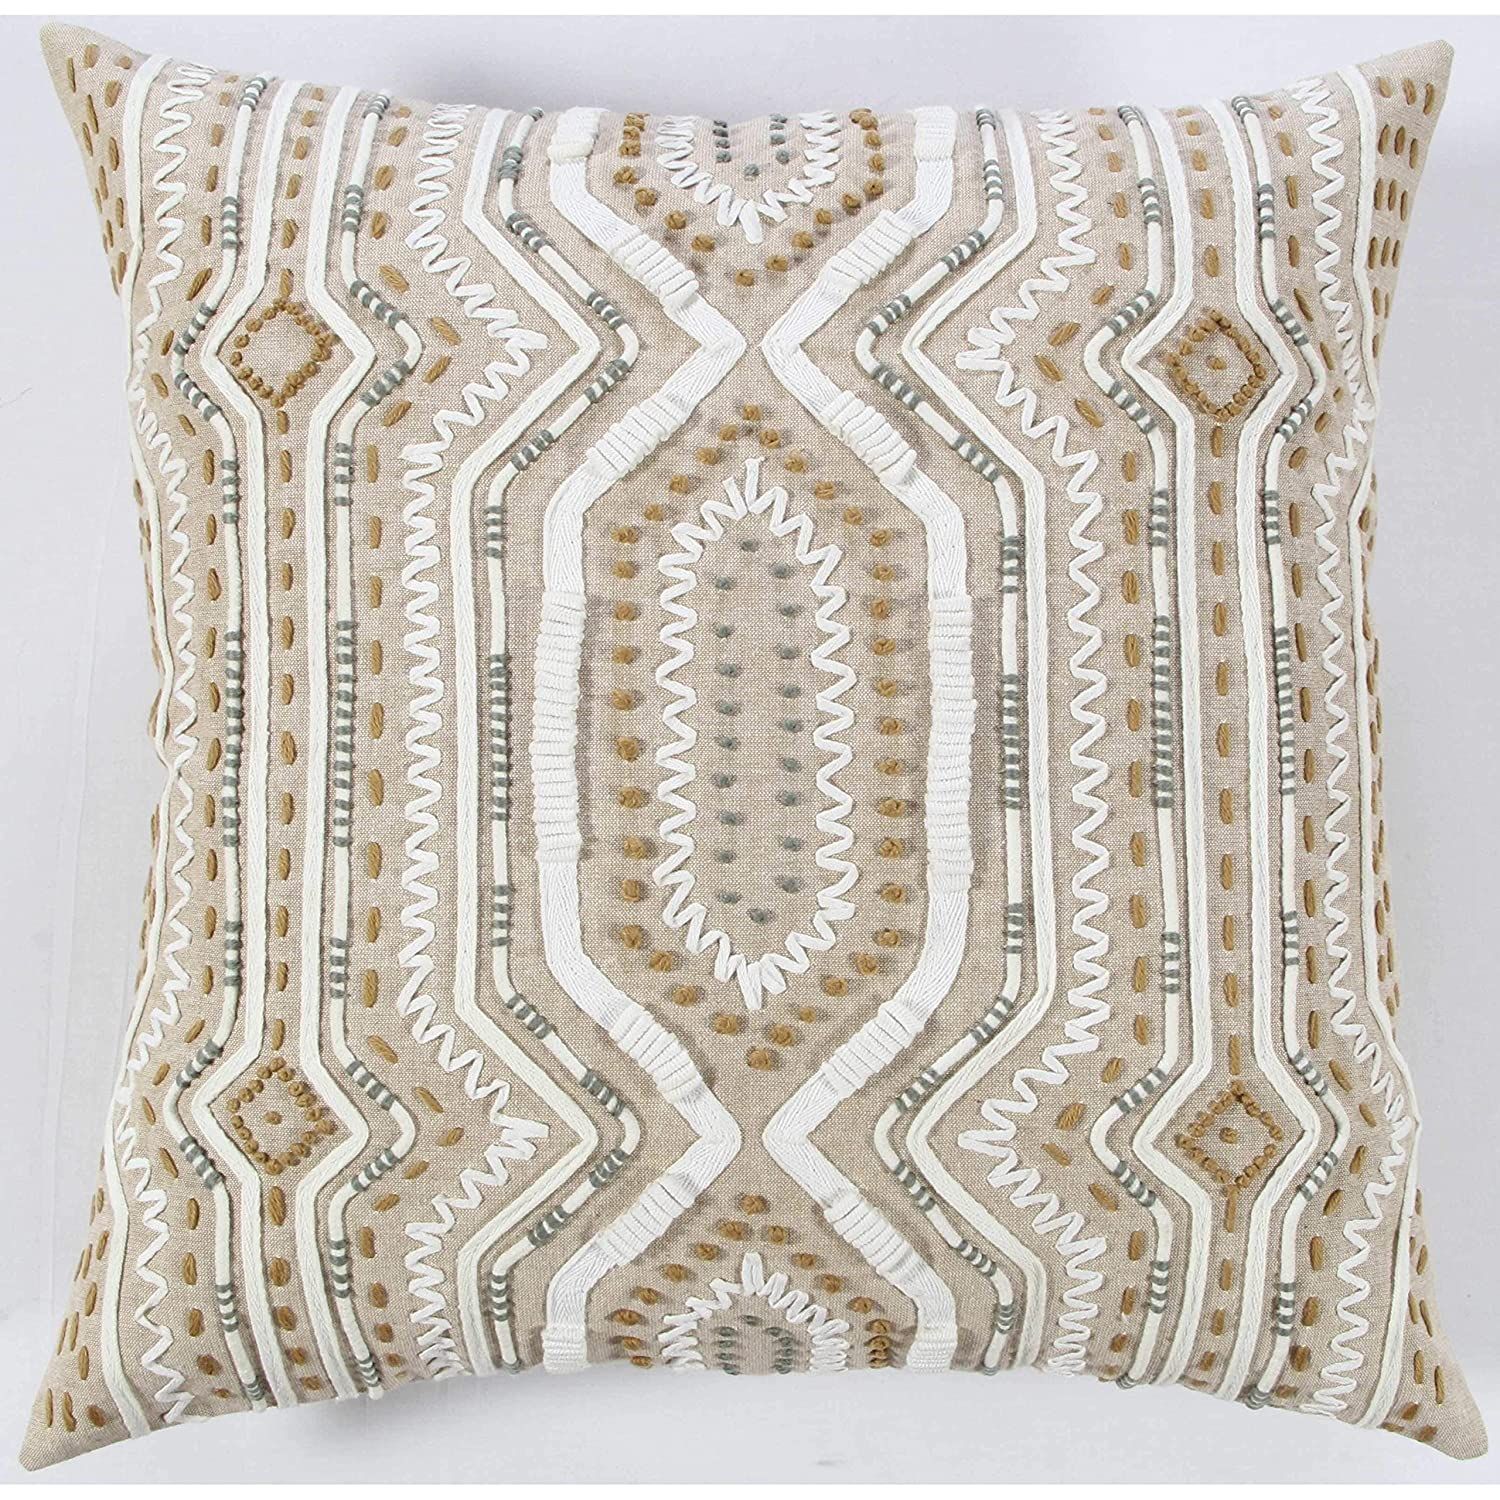 Rizzy Home T12355 Decorative Poly Filled Throw Pillow 20 x 20 Lt Brown//White